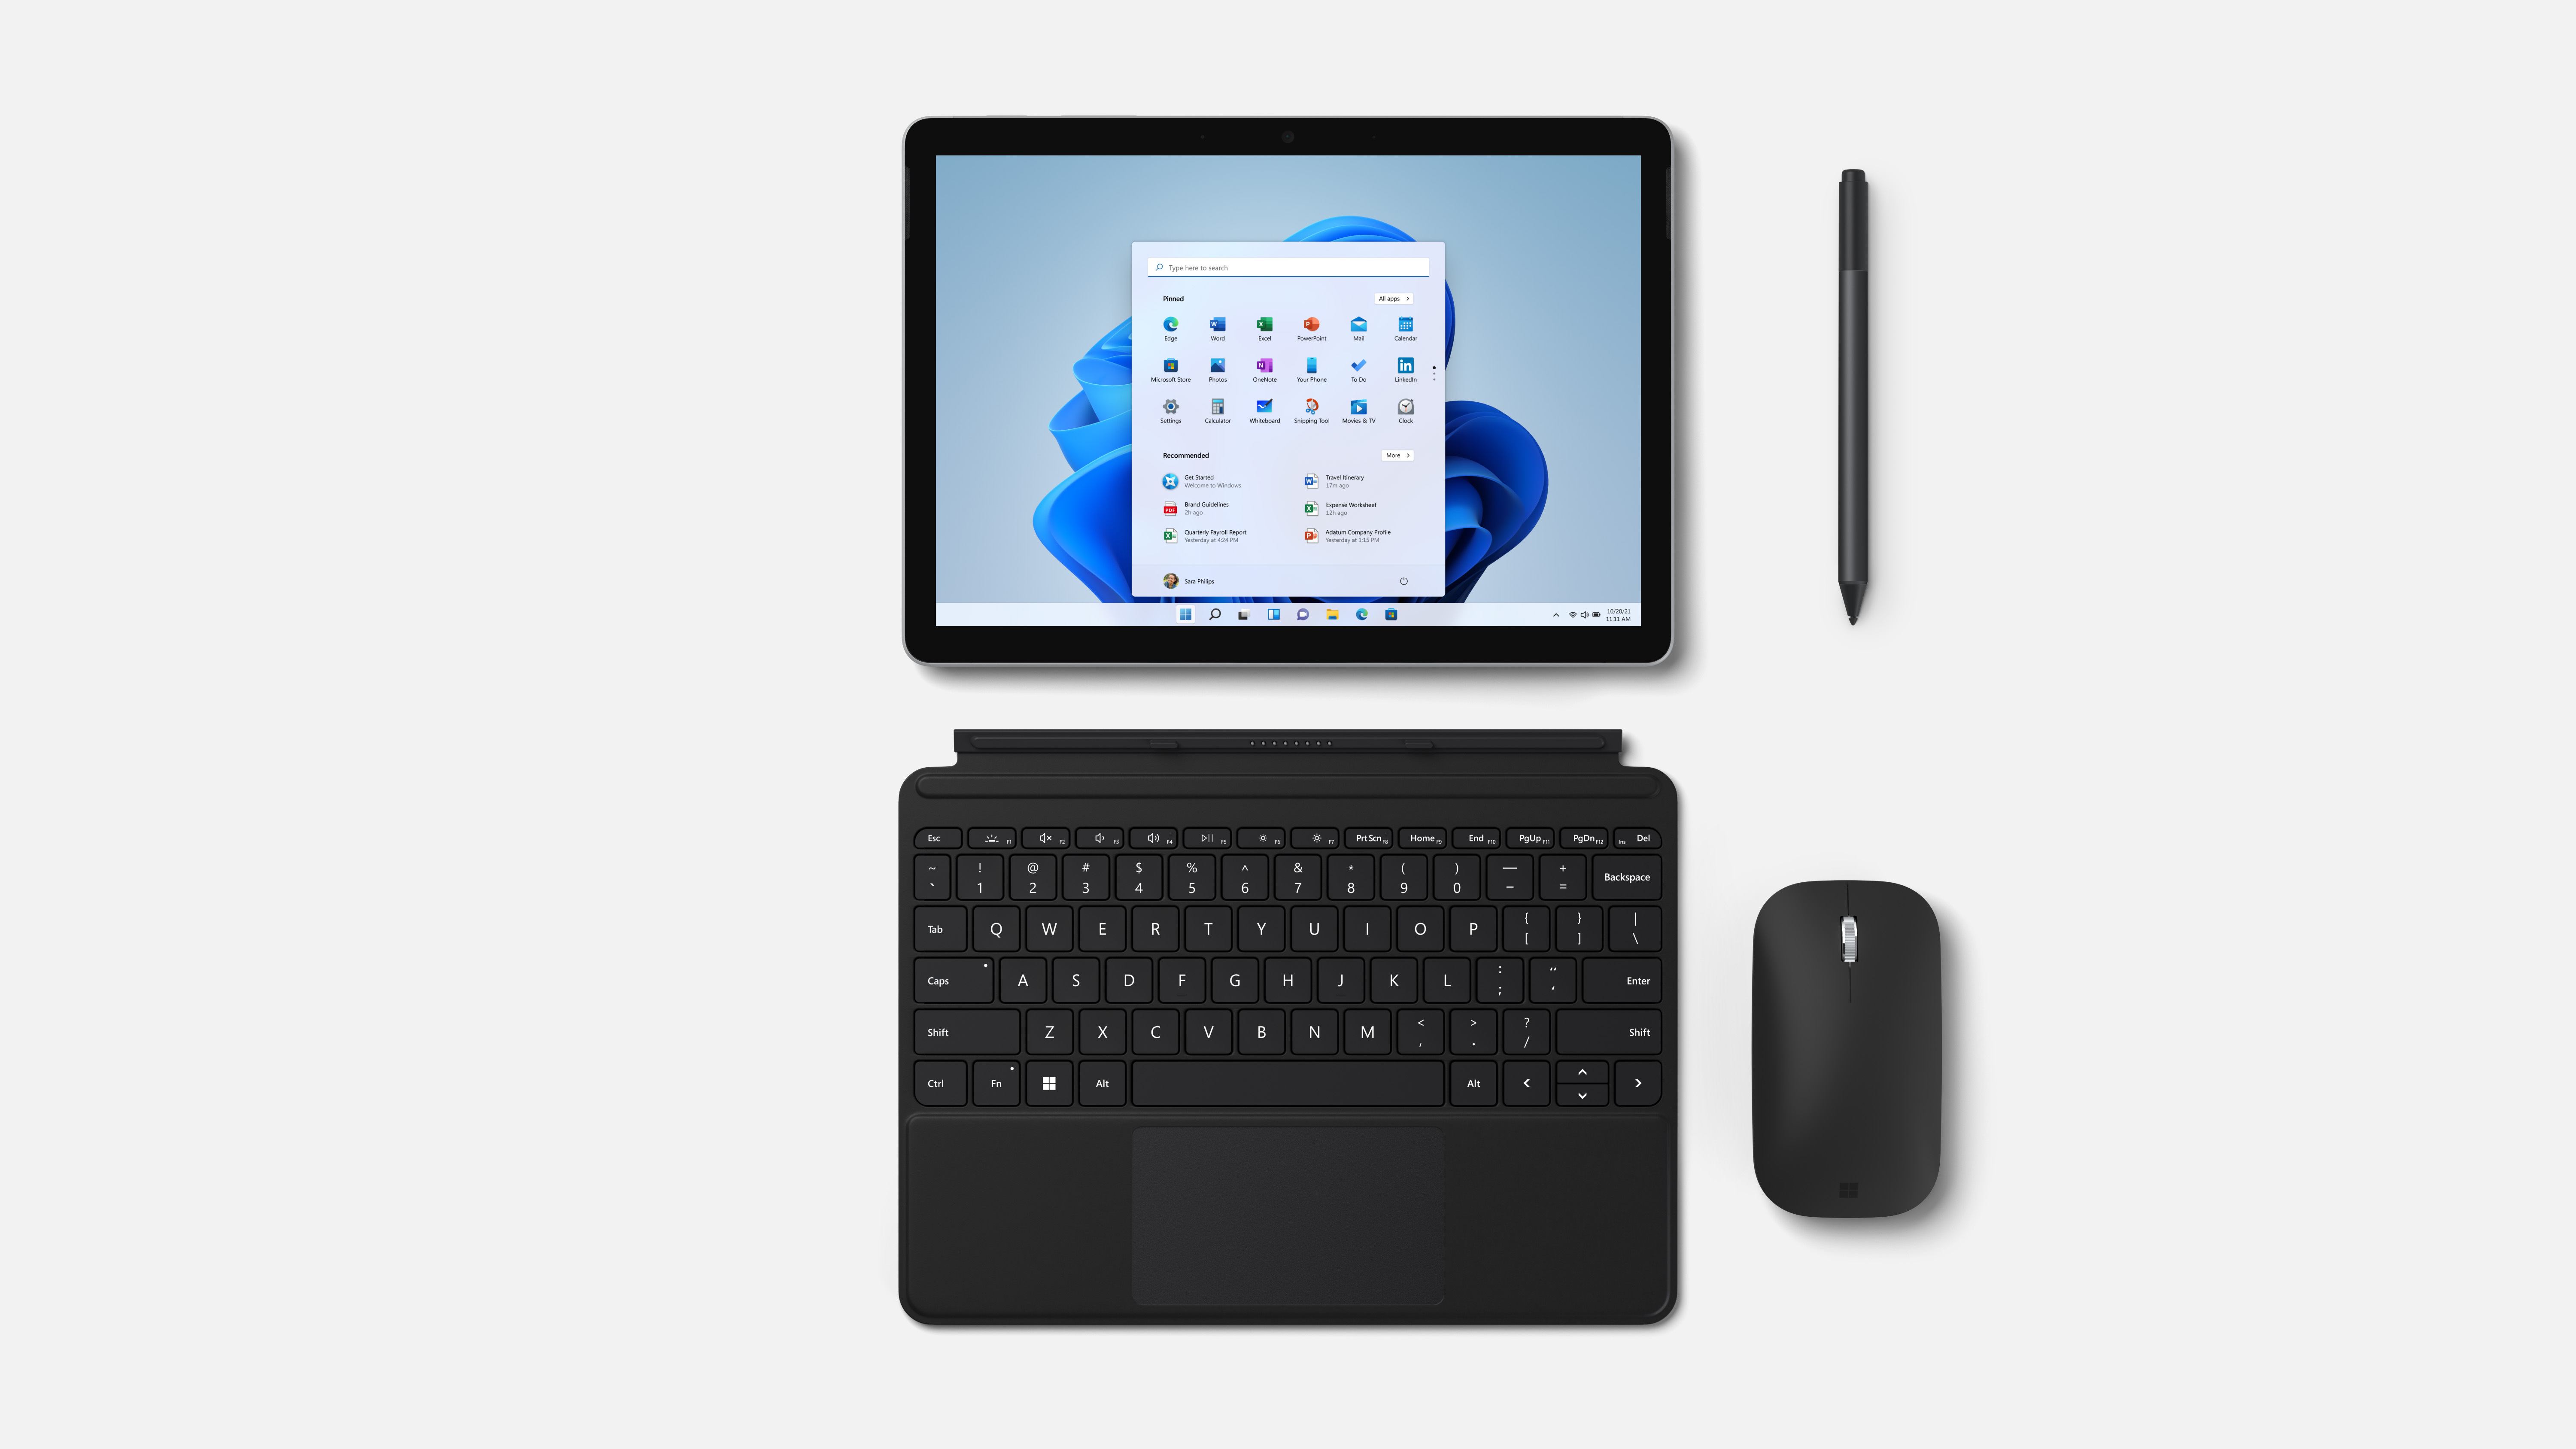 Microsoft Surface Pro 8 with detachable keyboard, stylus, and other accessories